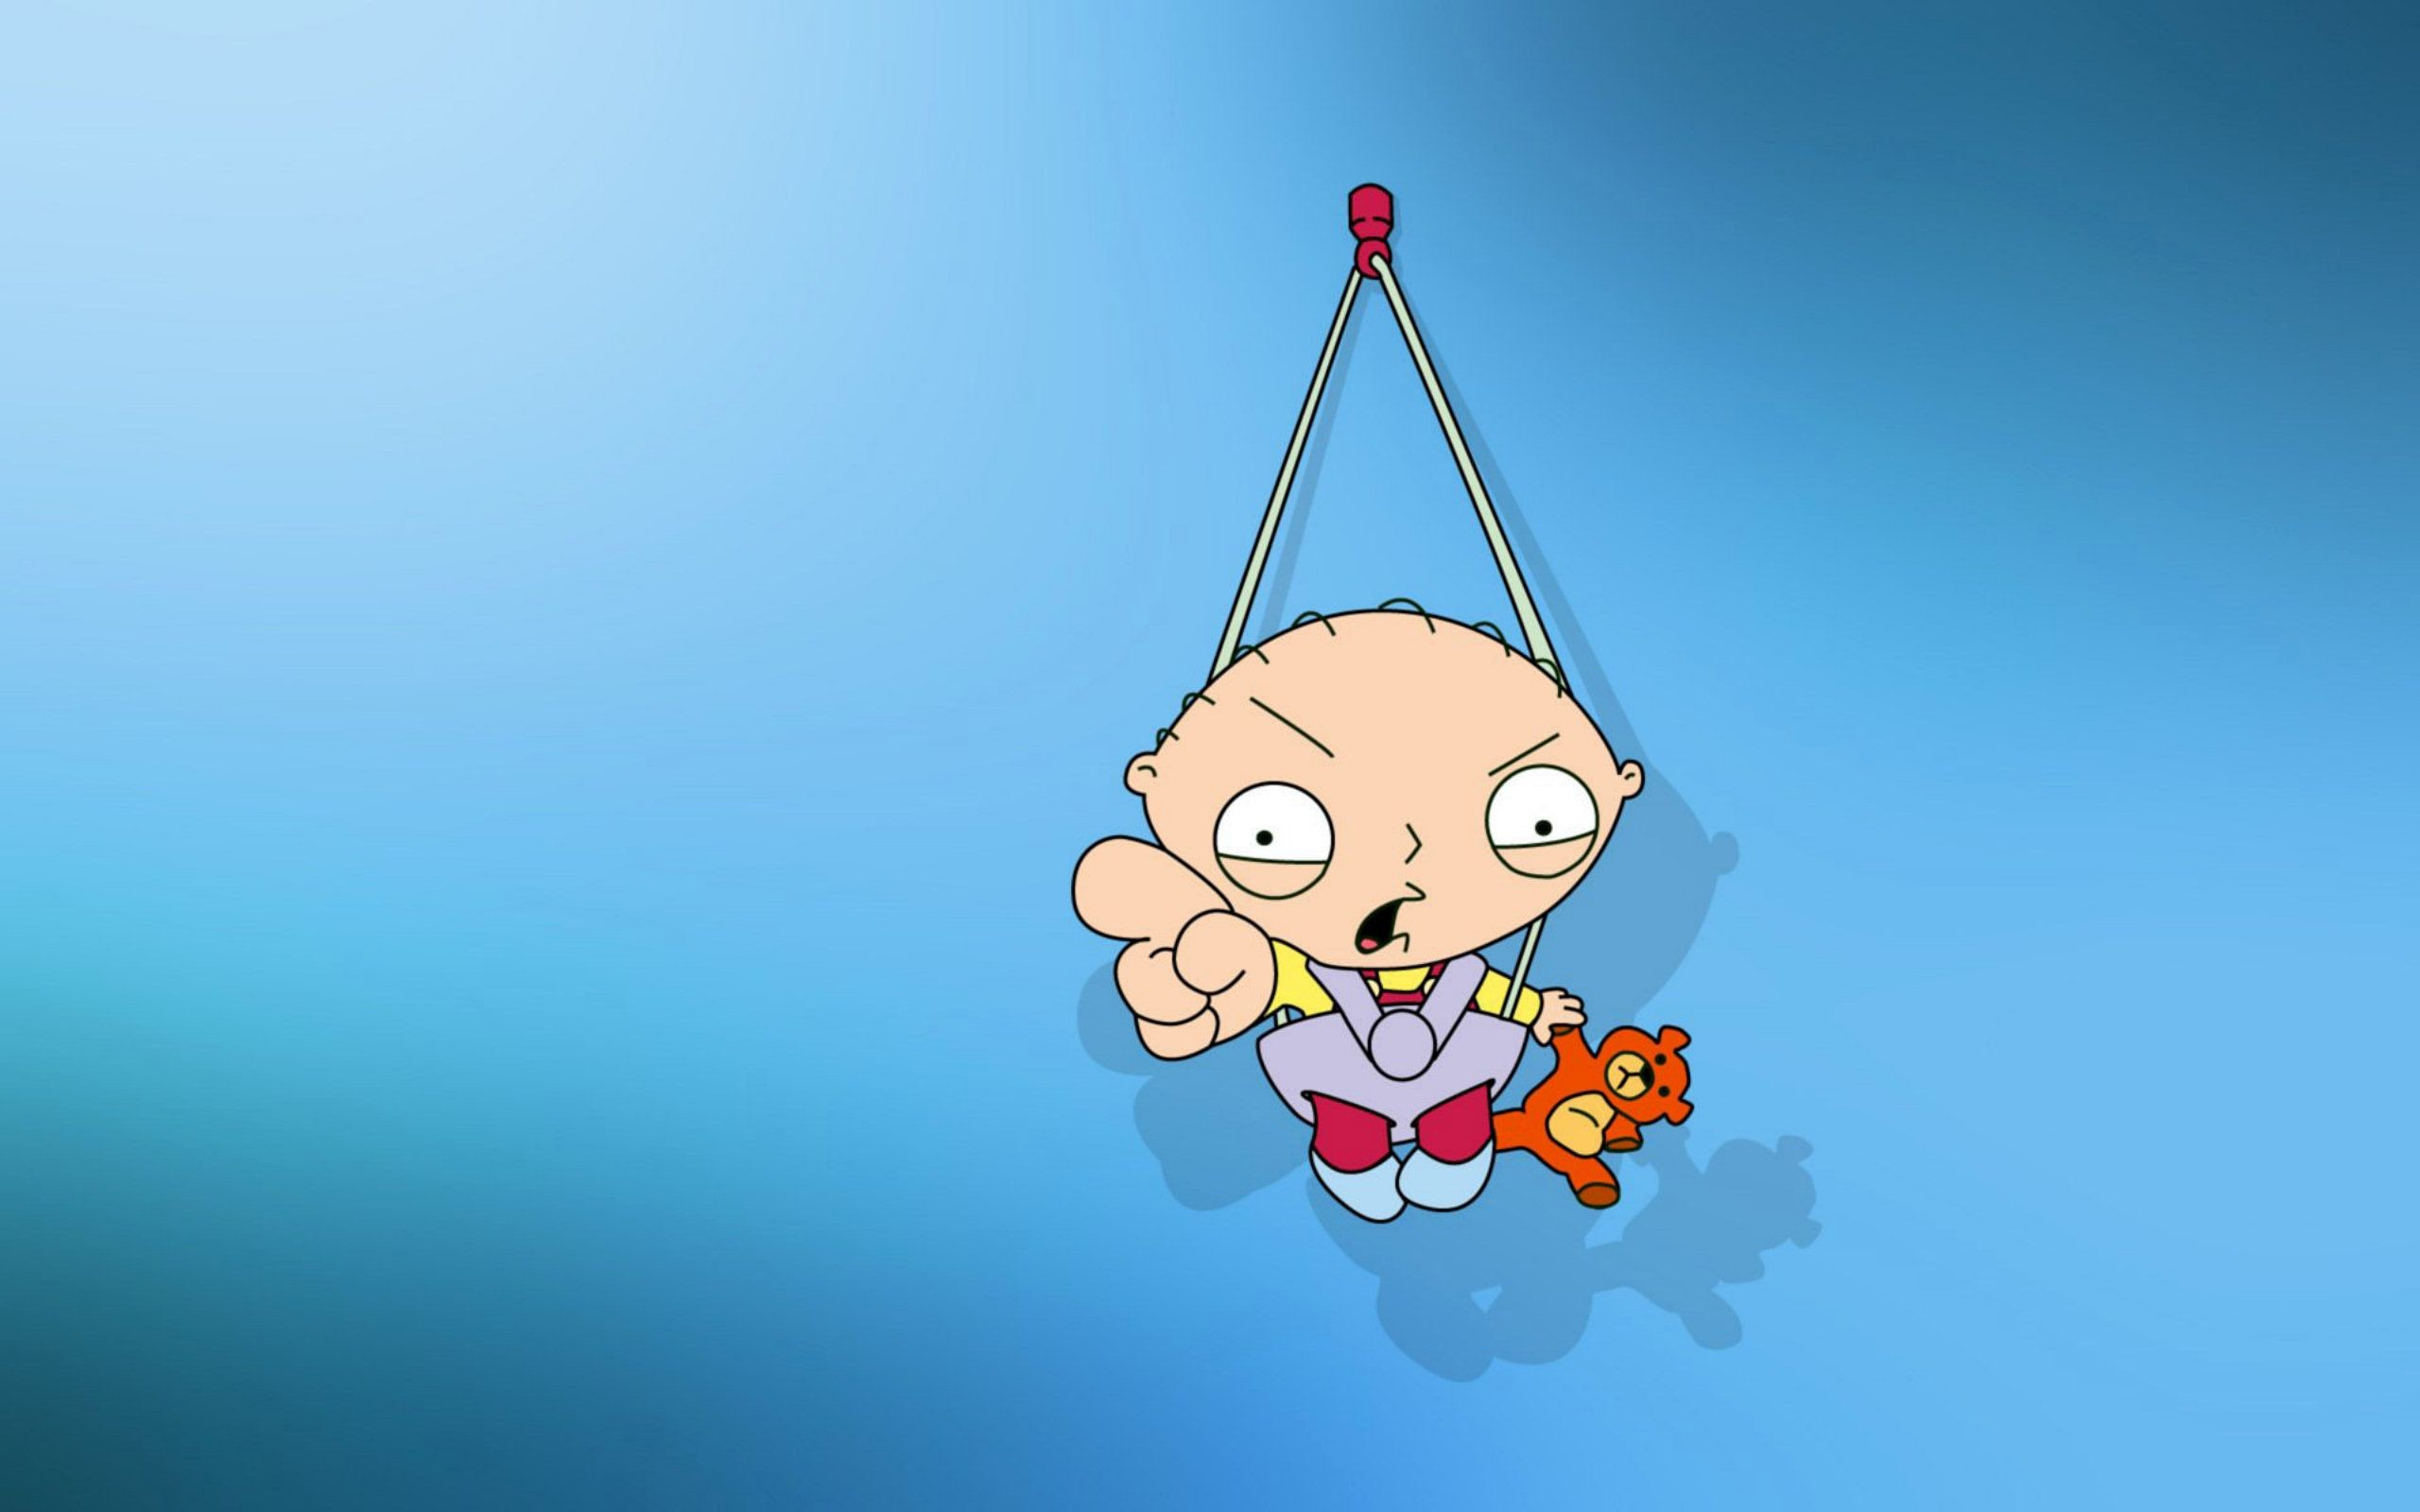 2560x1600 115 Family Guy HD Wallpapers | Backgrounds - Wallpaper Abyss